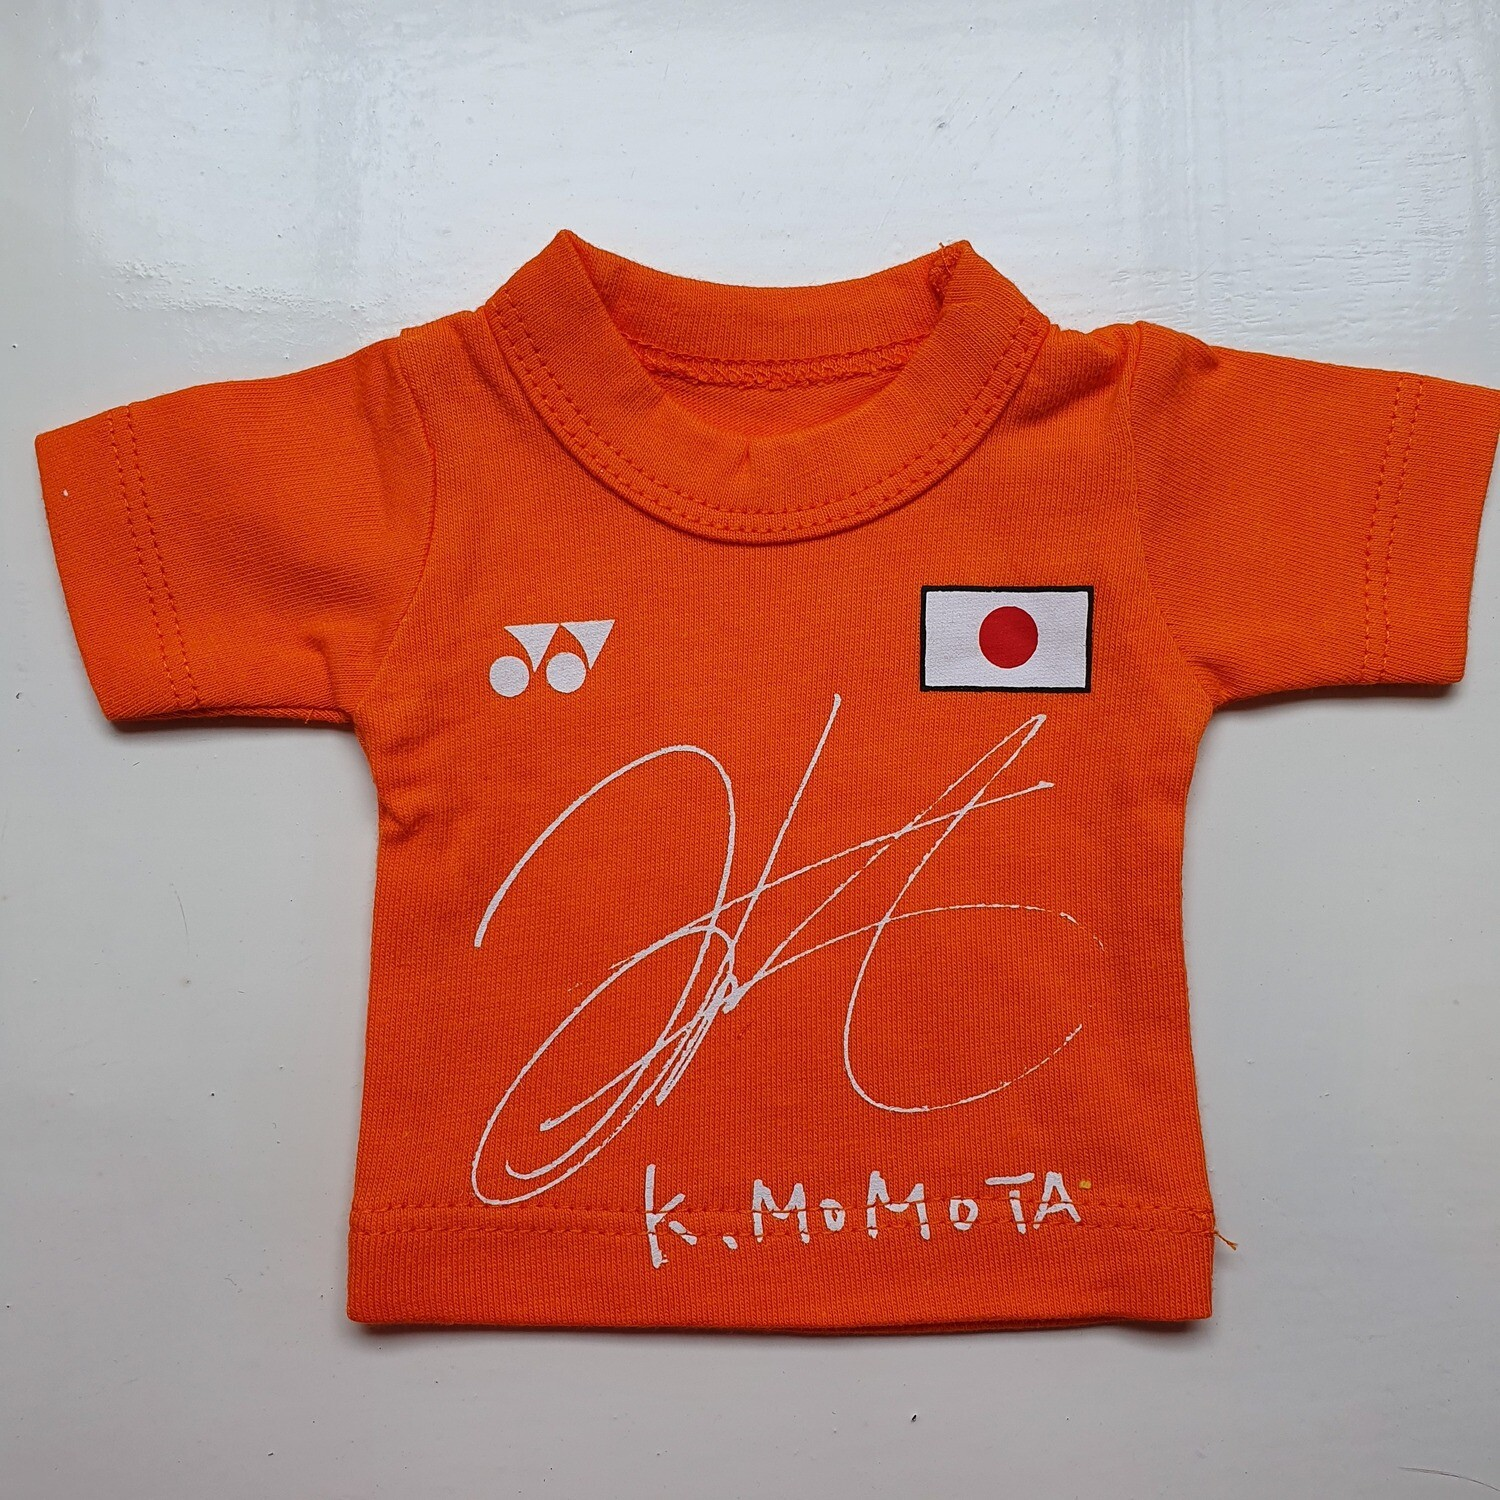 Yonex Legends Mini Shirt - Kento Momota